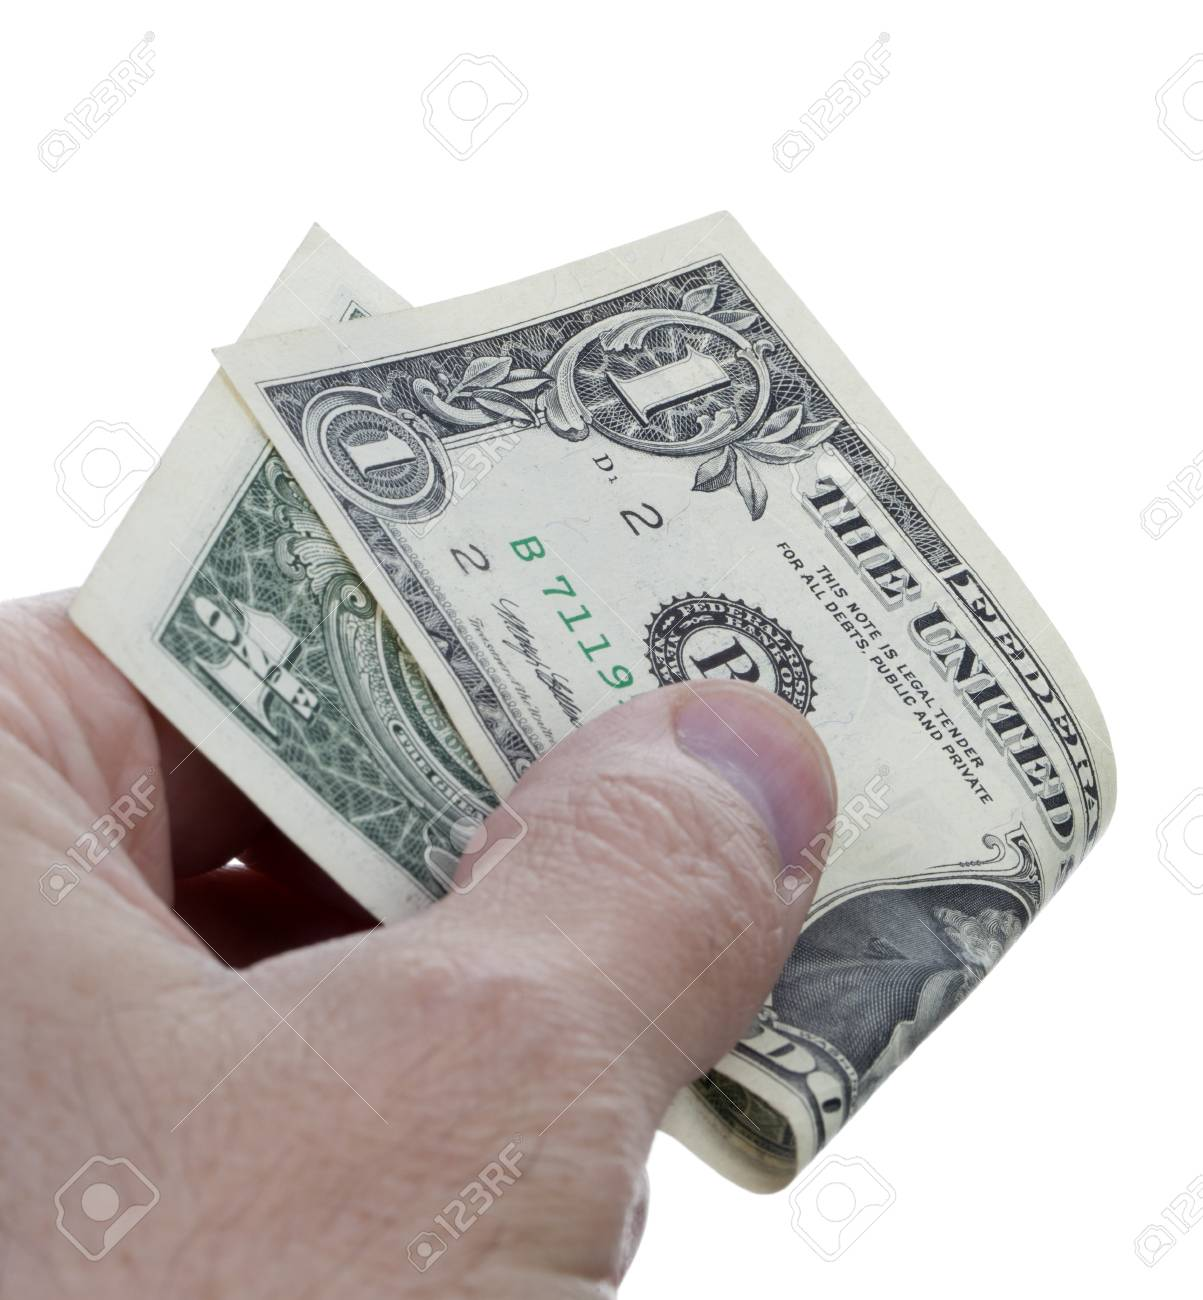 U.S. dollars in hand isolated on white background Stock Photo - 19970822